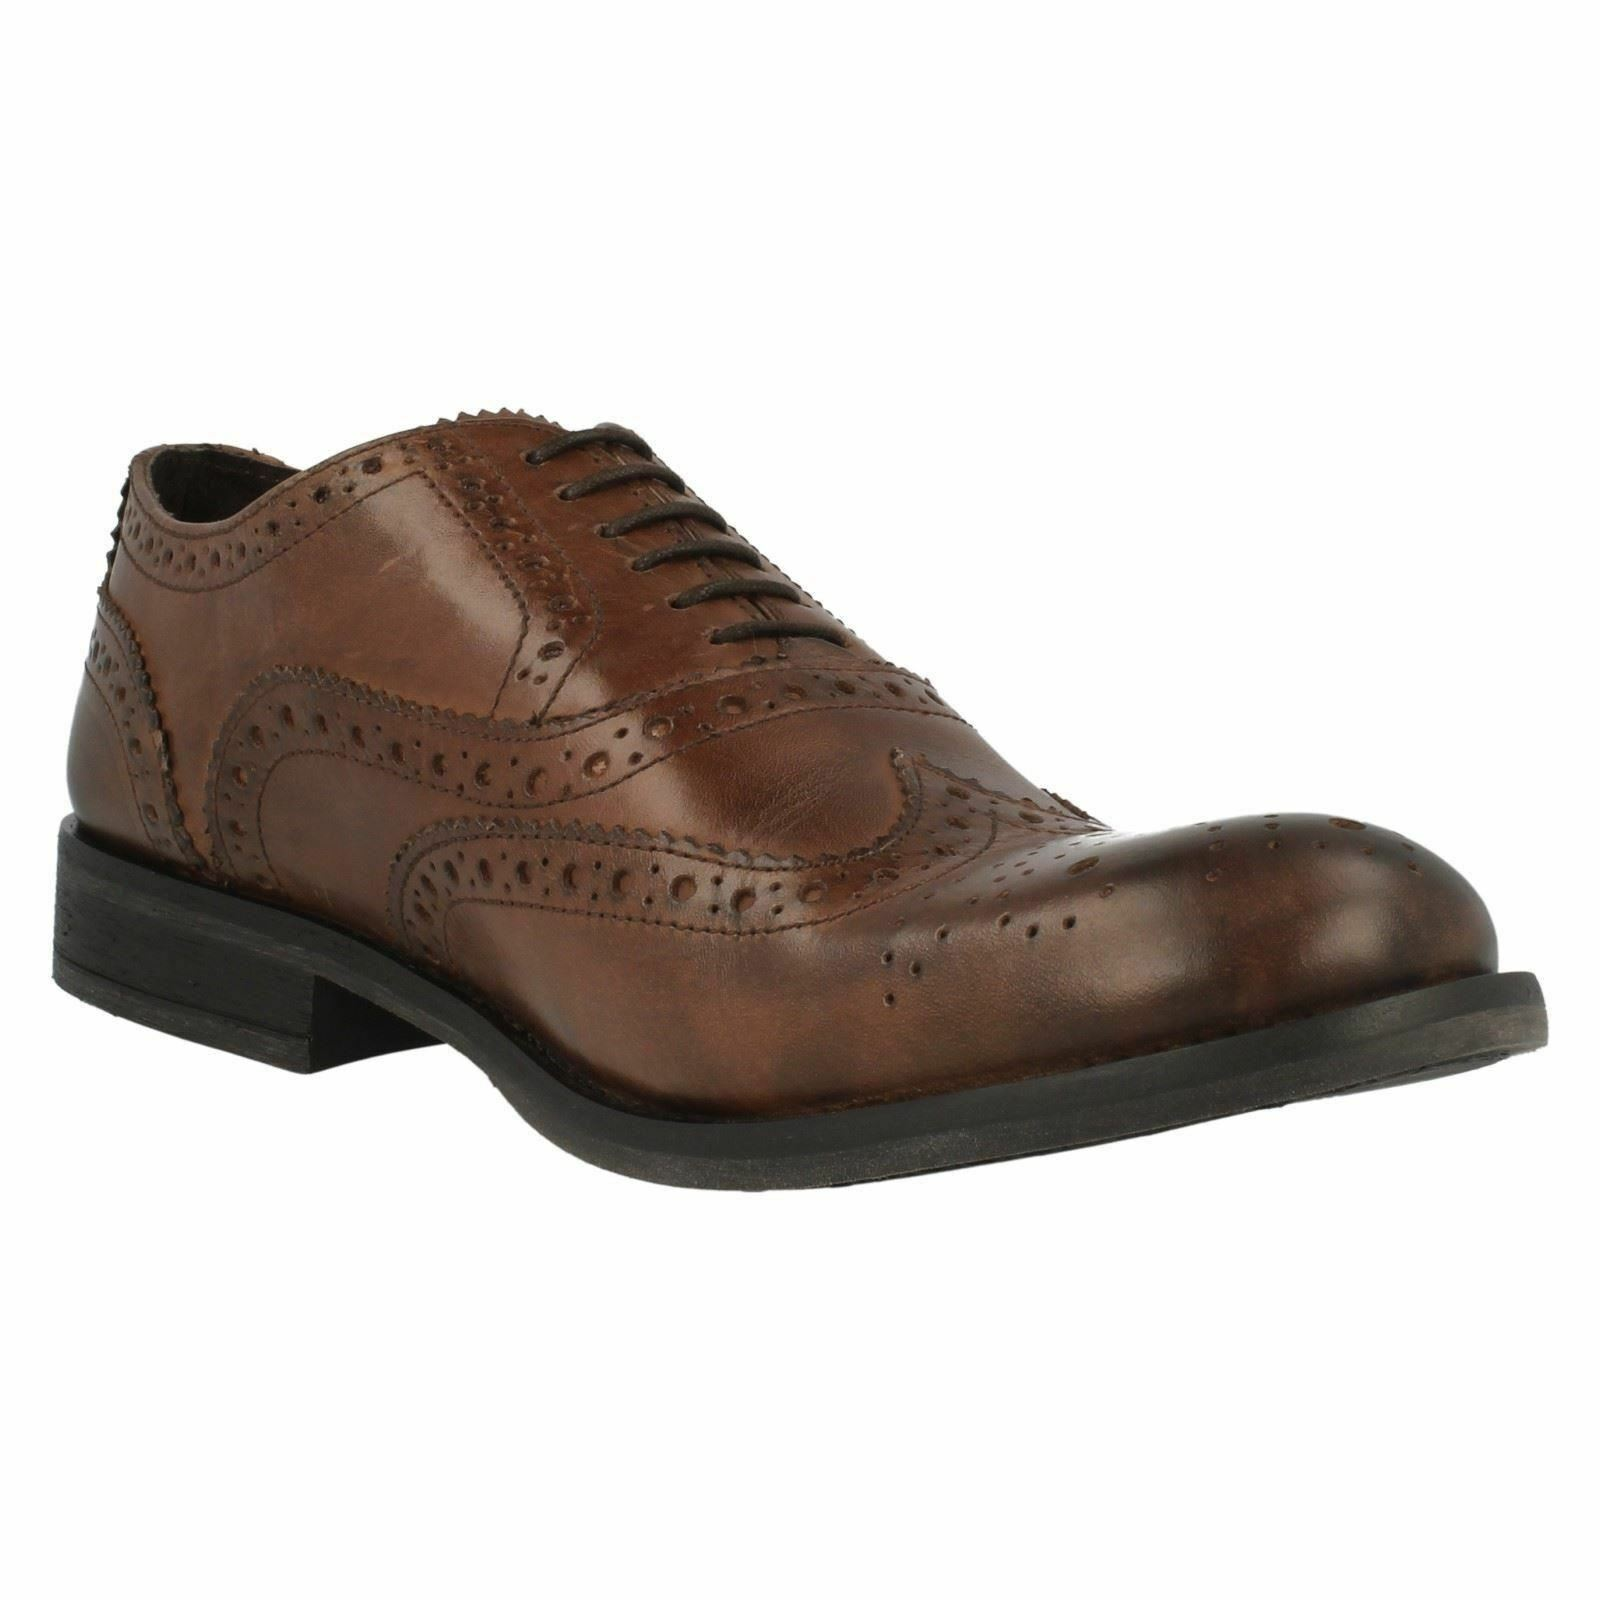 SALE Base London Walnut Gents Marrón Leather Leather Leather Full Brogue Wingtip Oxford Zapatos 233369